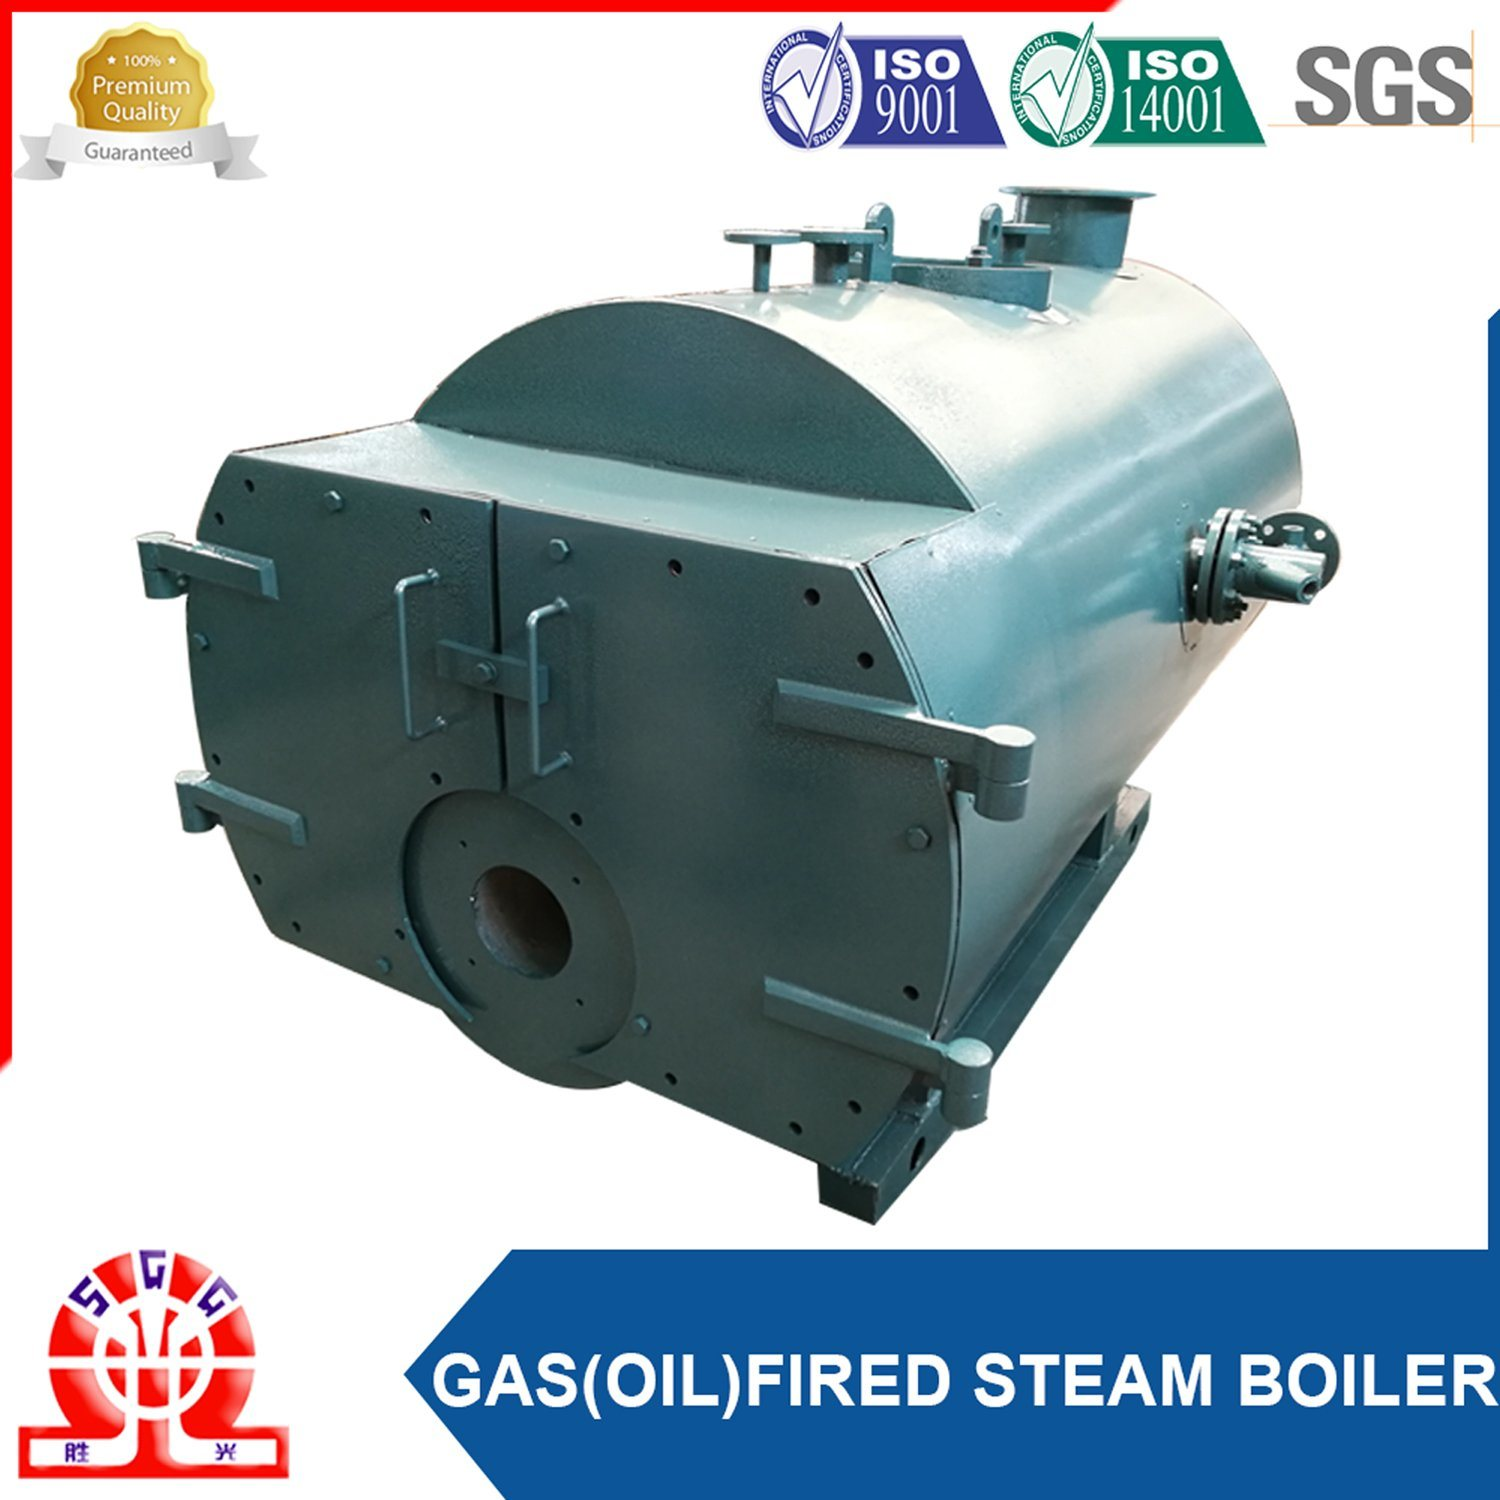 China Oil Gas Fired Dual Fuel Industrial Boiler with Weishaupt ...